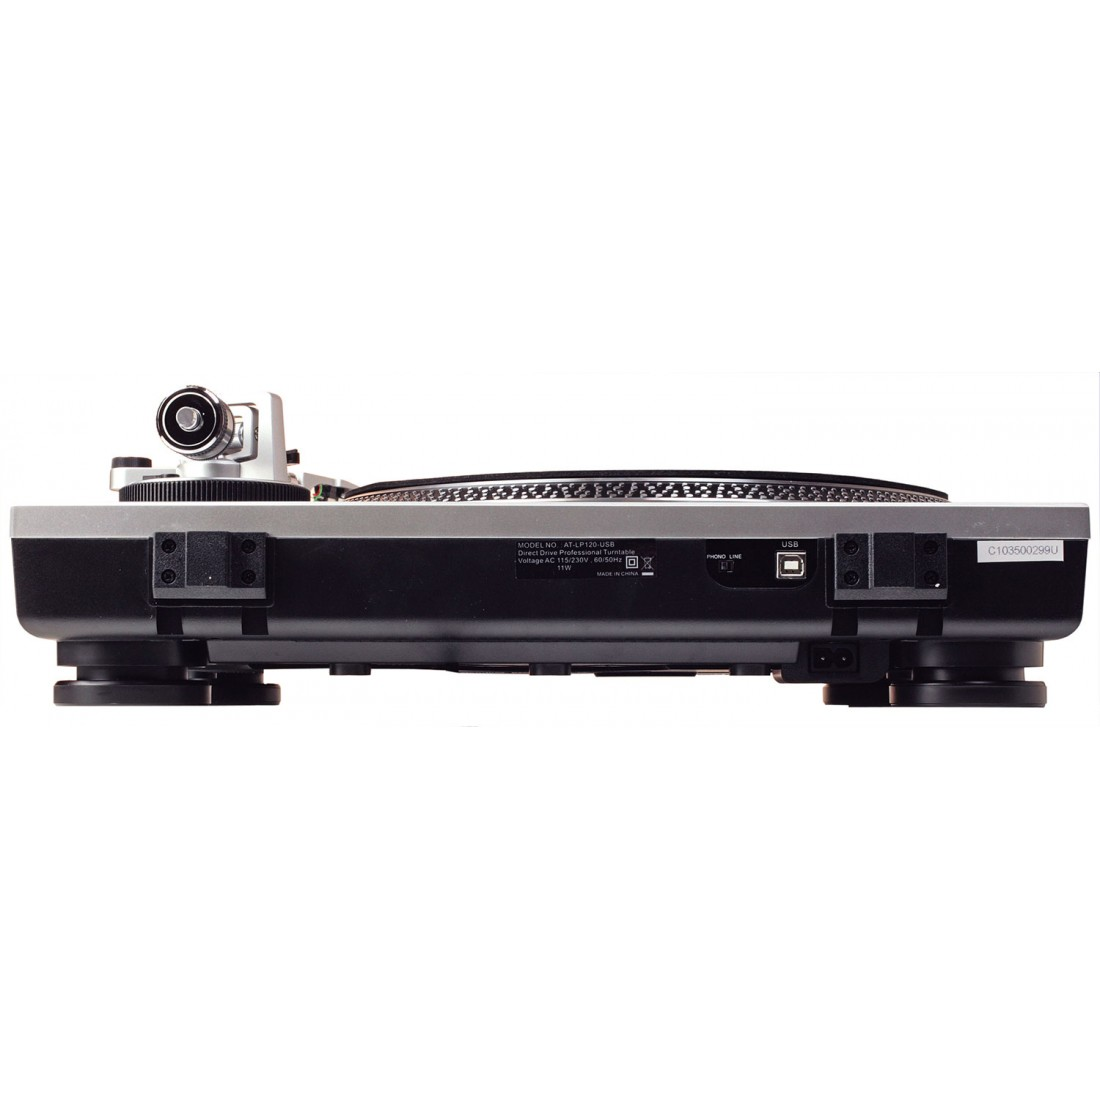 audio technica at lp120x hs6 usb turntable black. Black Bedroom Furniture Sets. Home Design Ideas